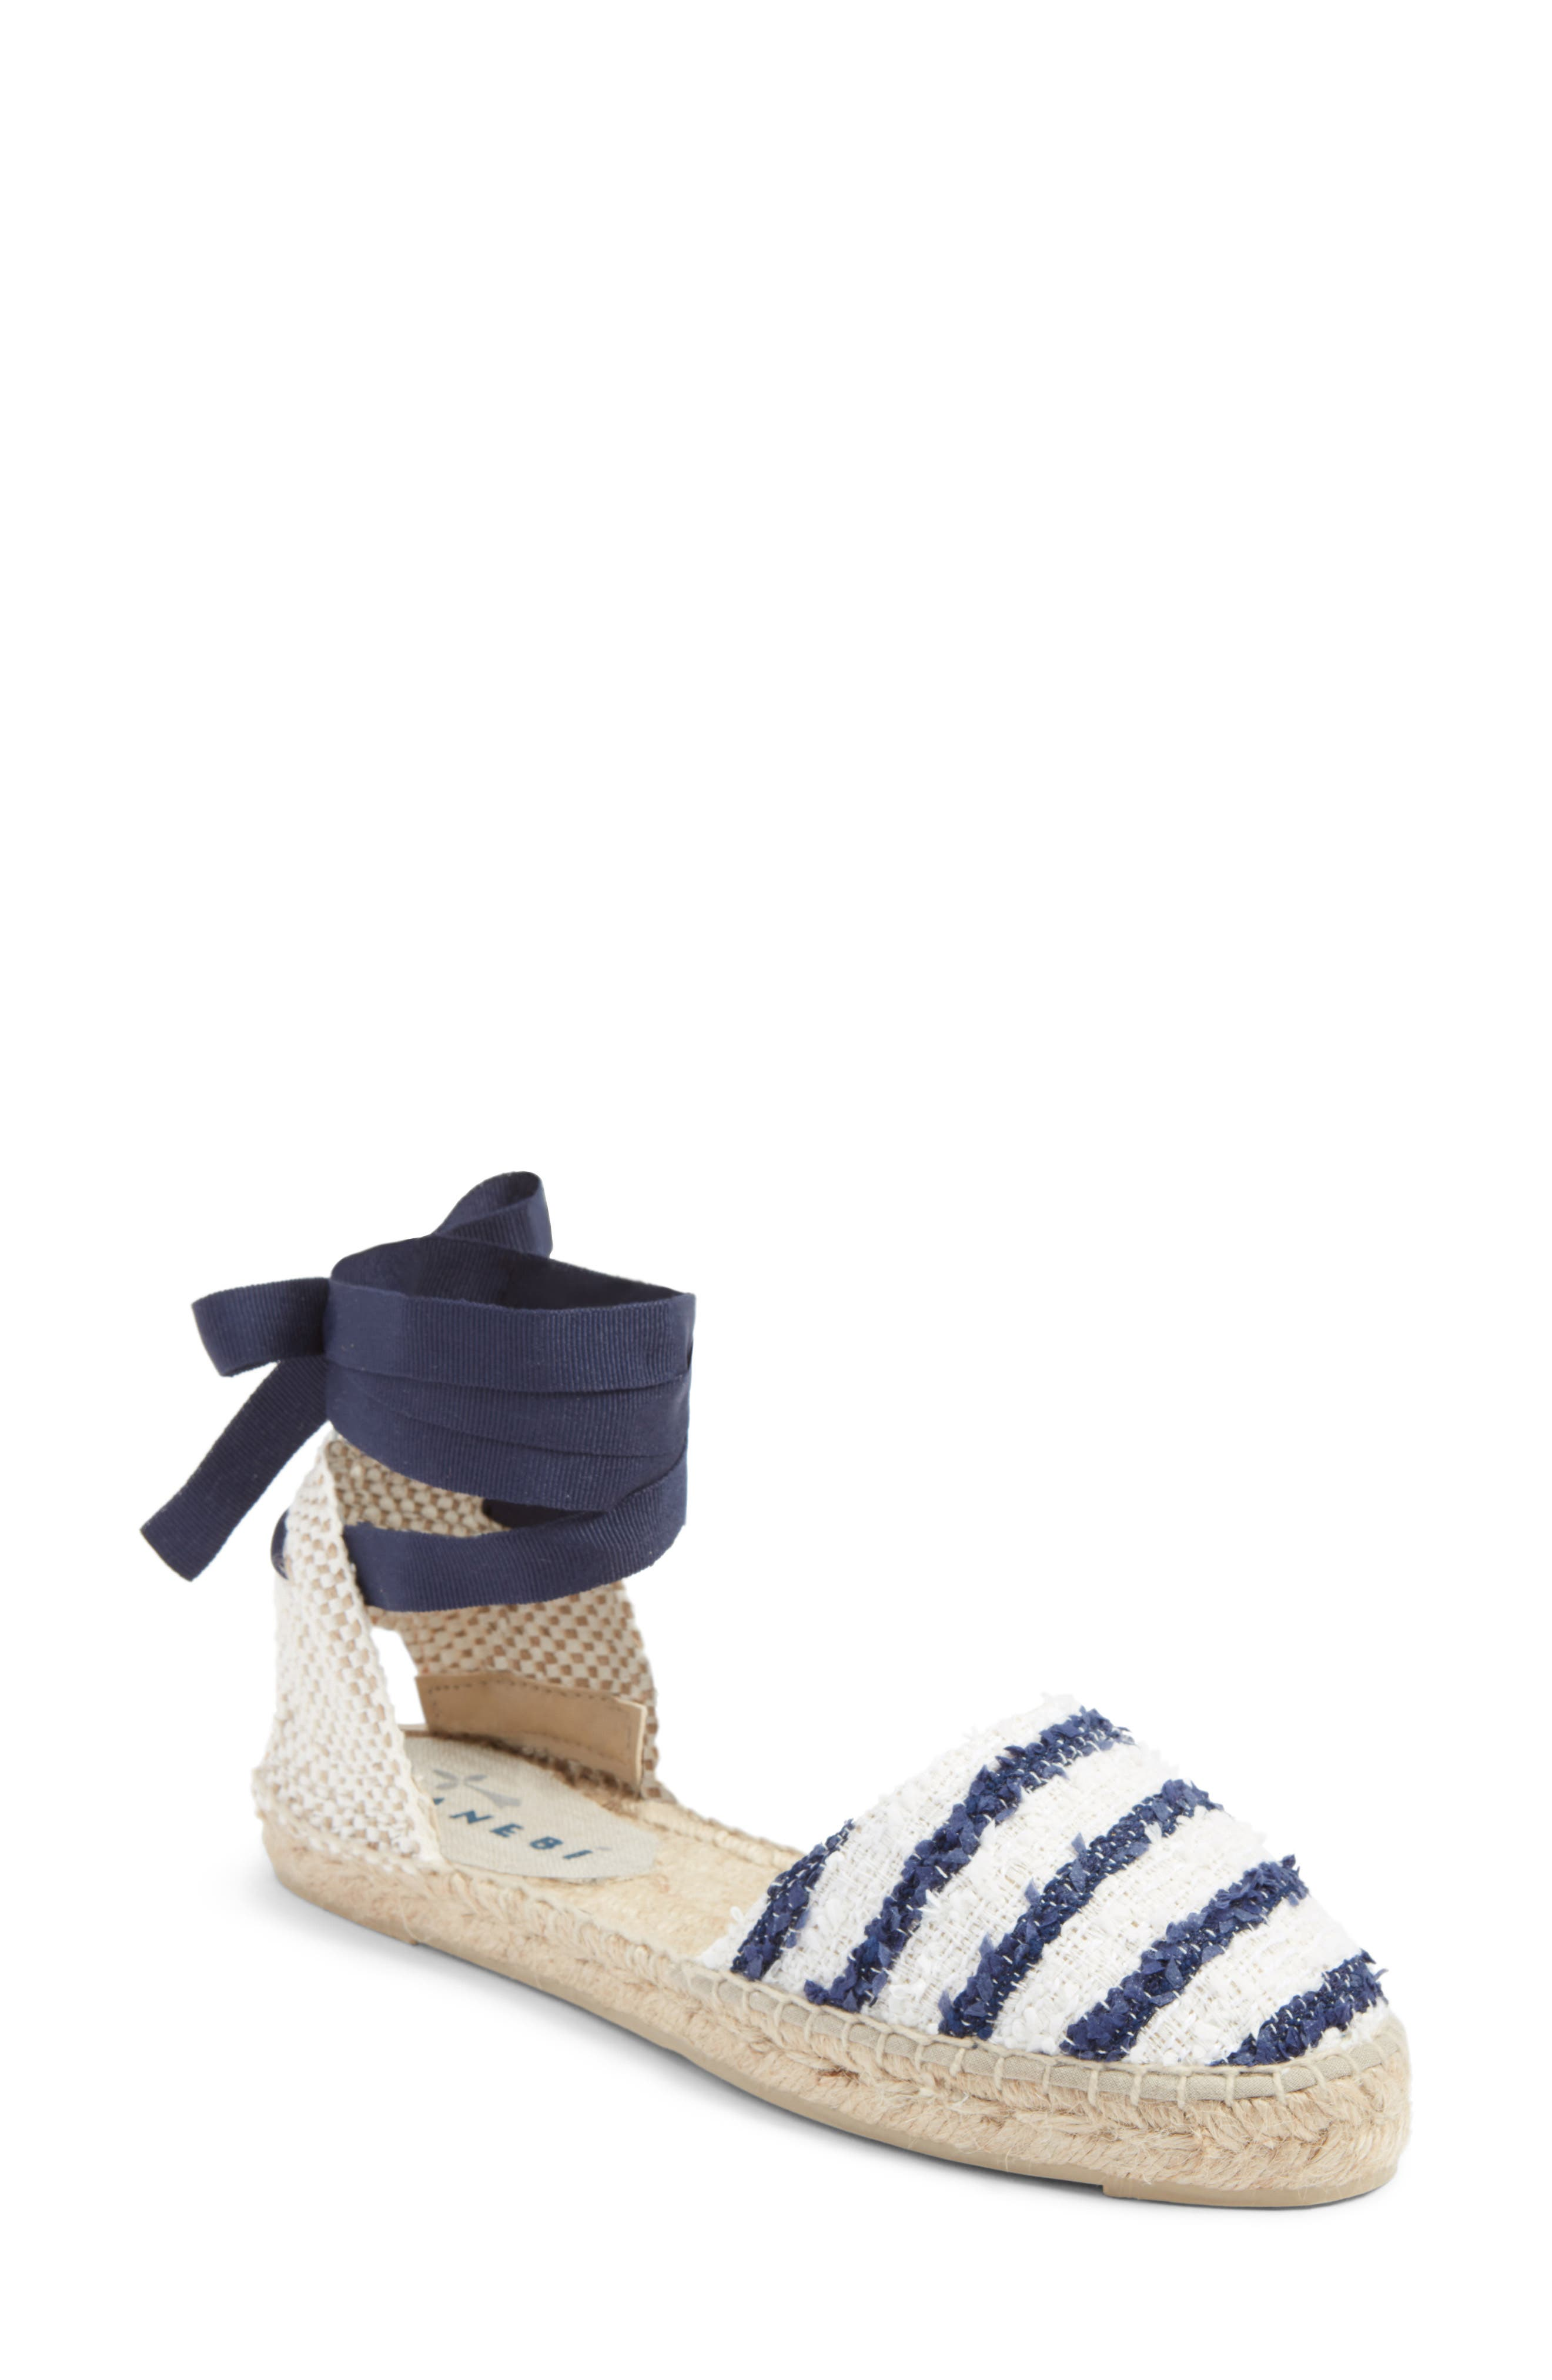 MANEBÍ Paris Lace-Up Espadrille Sandal,                         Main,                         color, 400